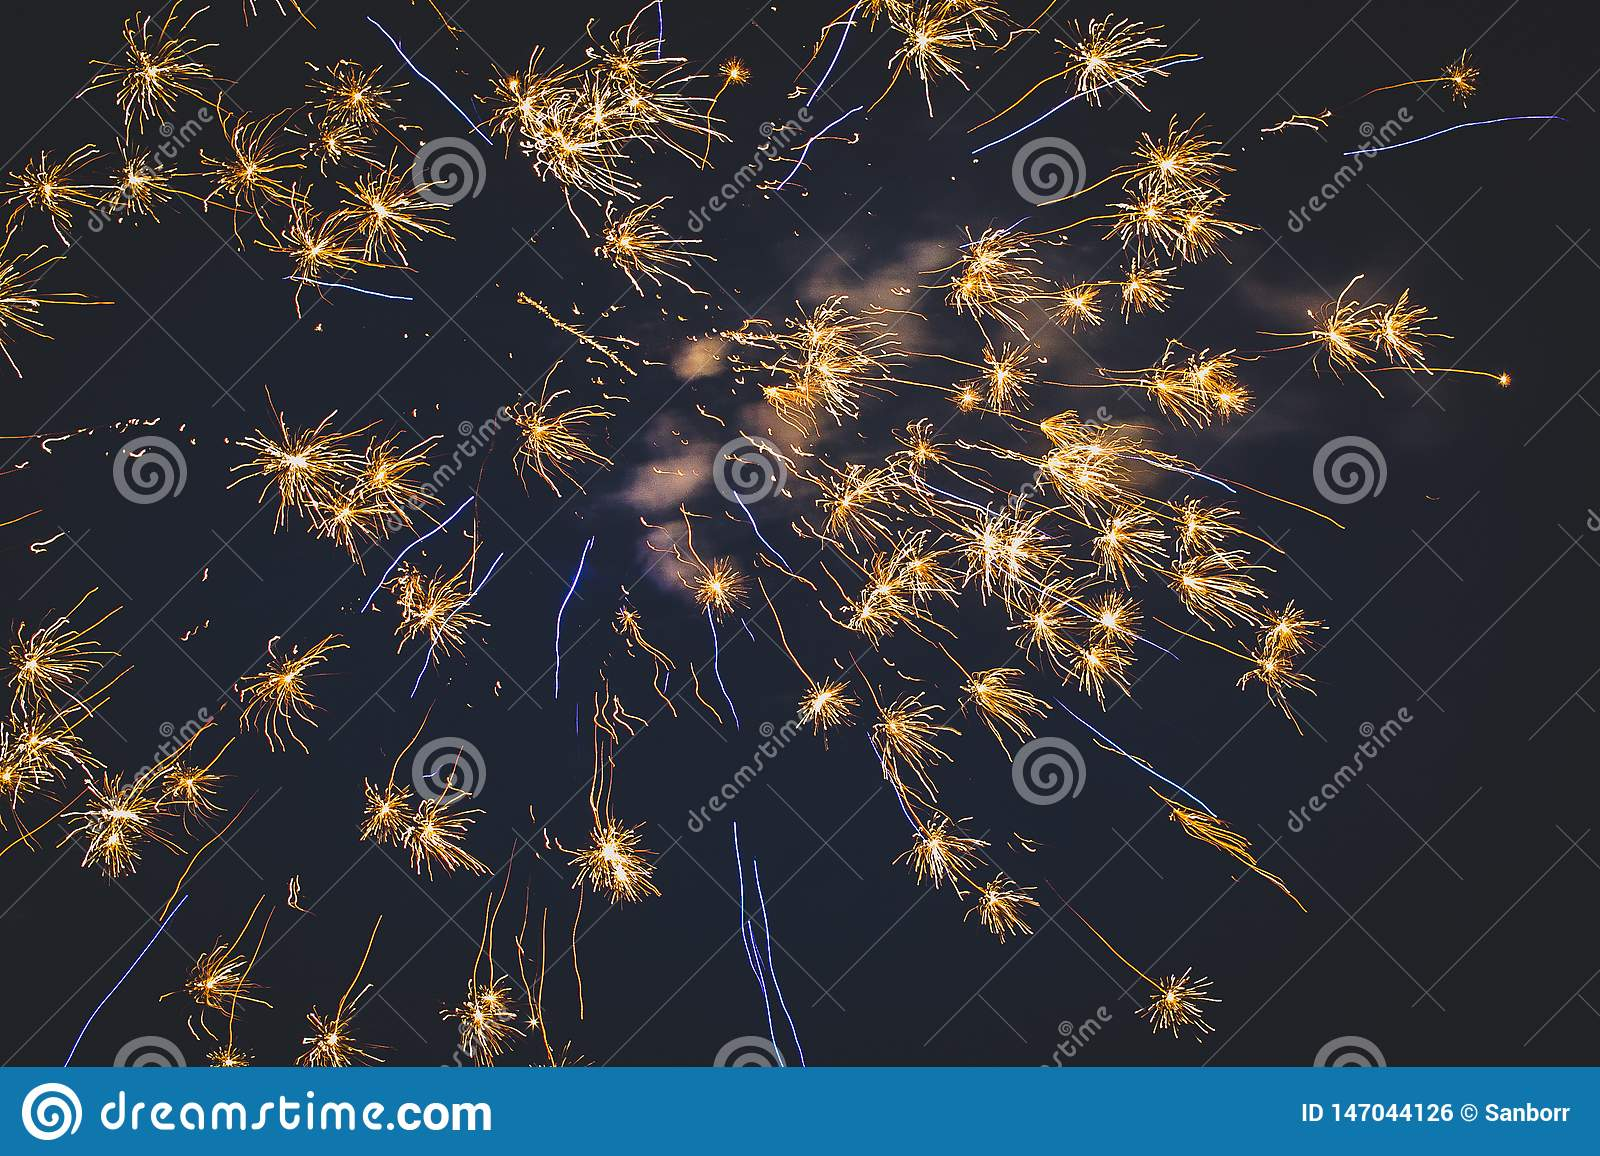 Beautiful fireworks in the night sky close-up. Bright explosion of festive fireworks on a dark background